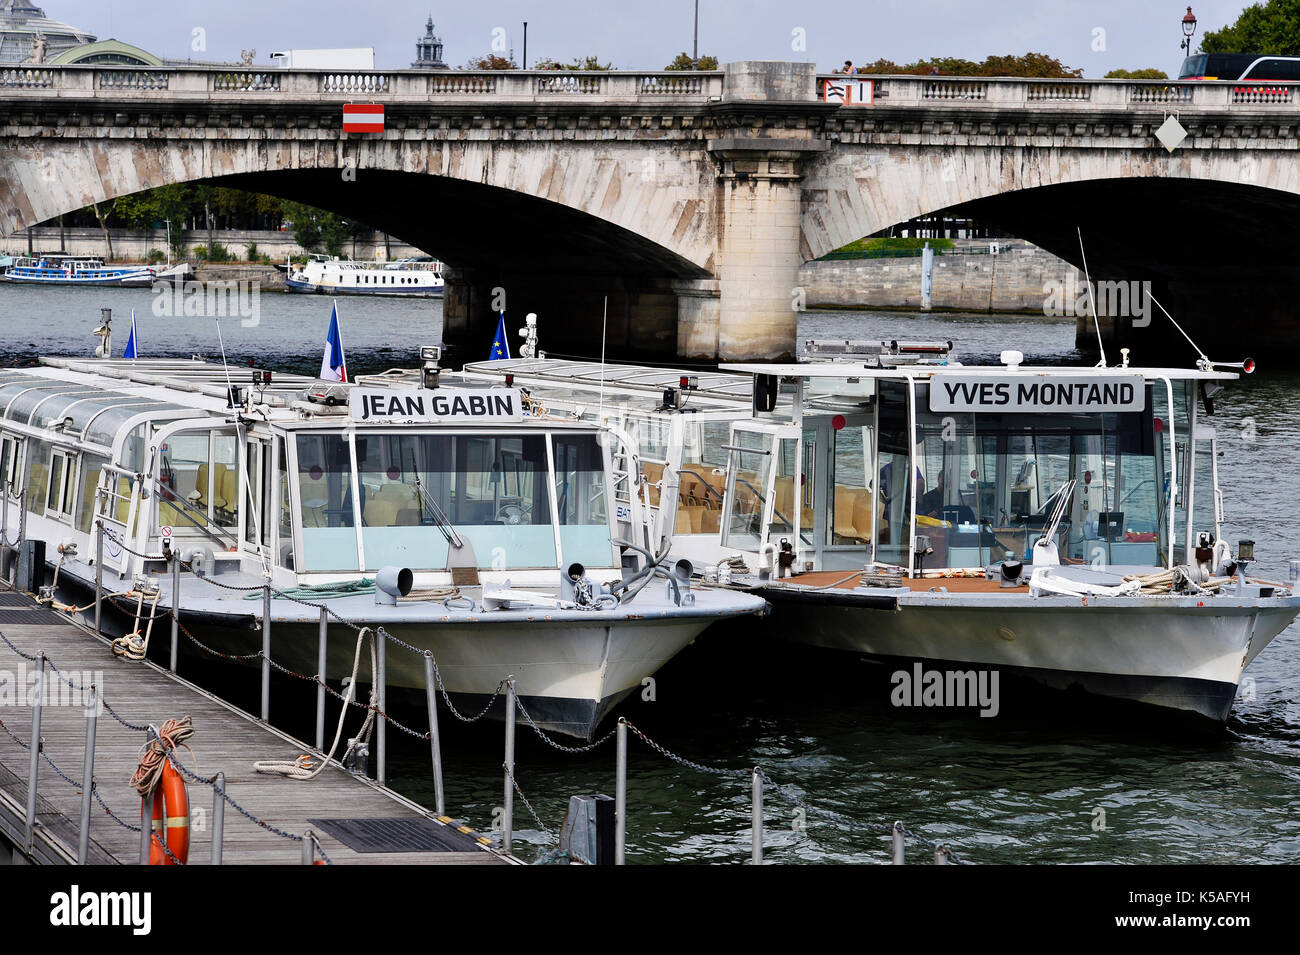 bateau mouche paris stock photos bateau mouche paris stock images alamy. Black Bedroom Furniture Sets. Home Design Ideas